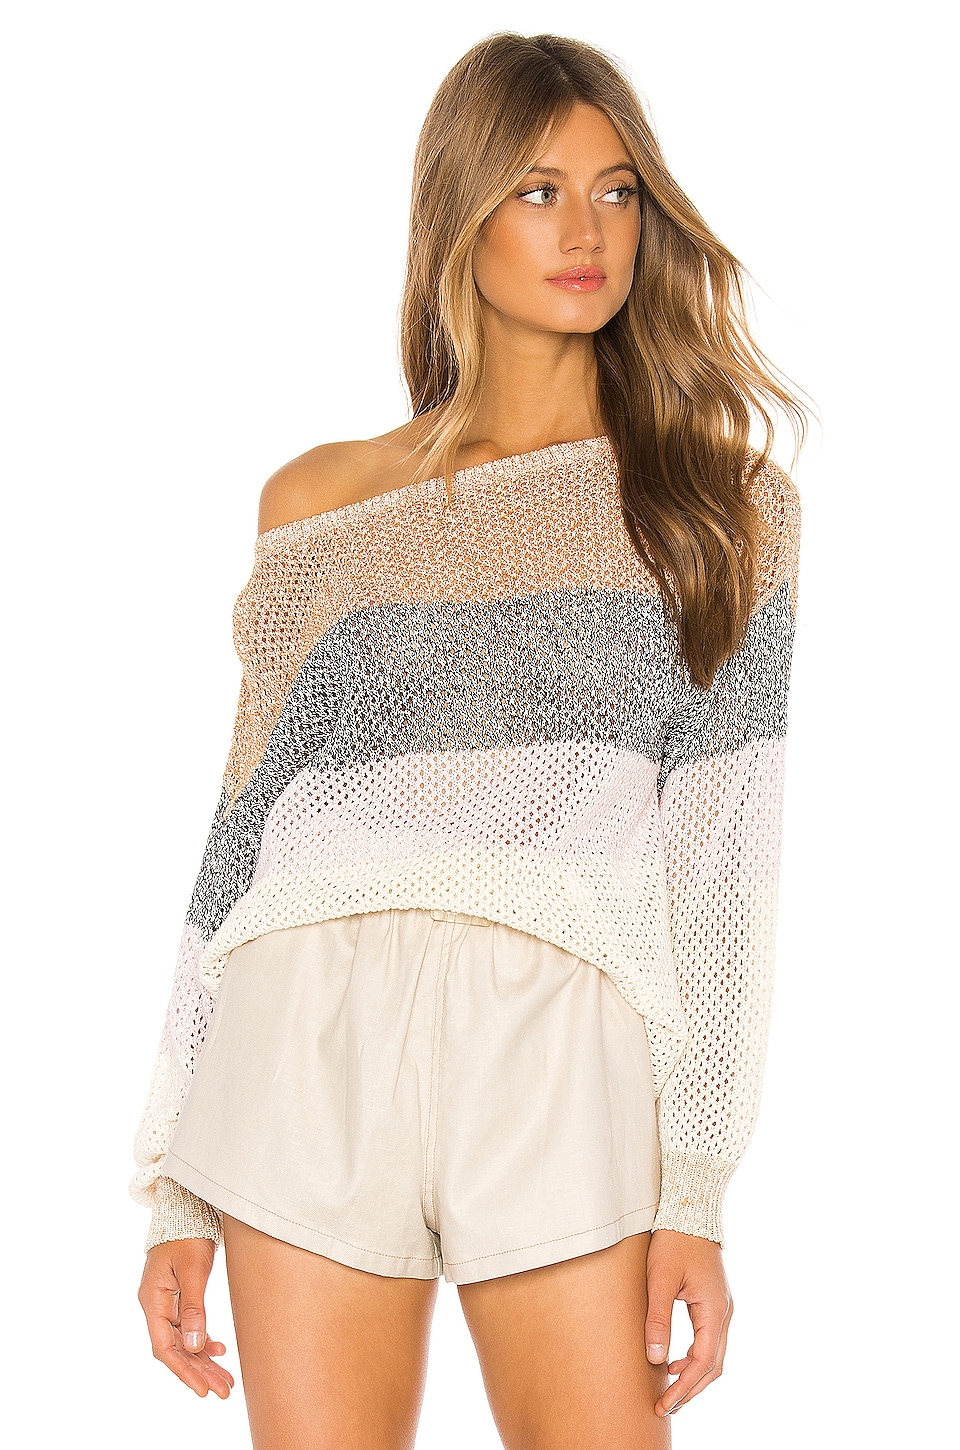 Joie Deroy B Sweater in Multi